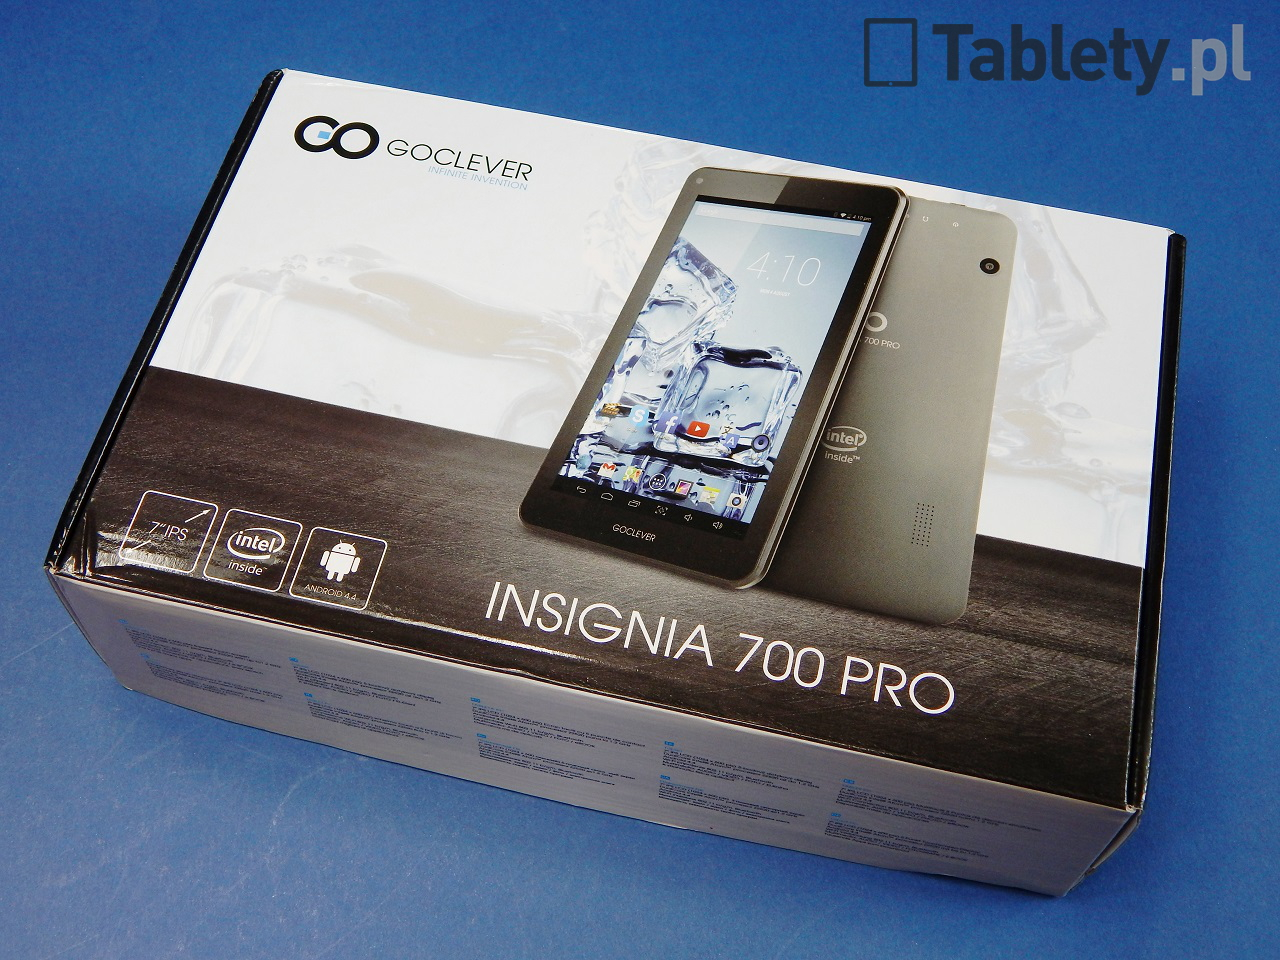 Goclever Insignia 700 Pro 01